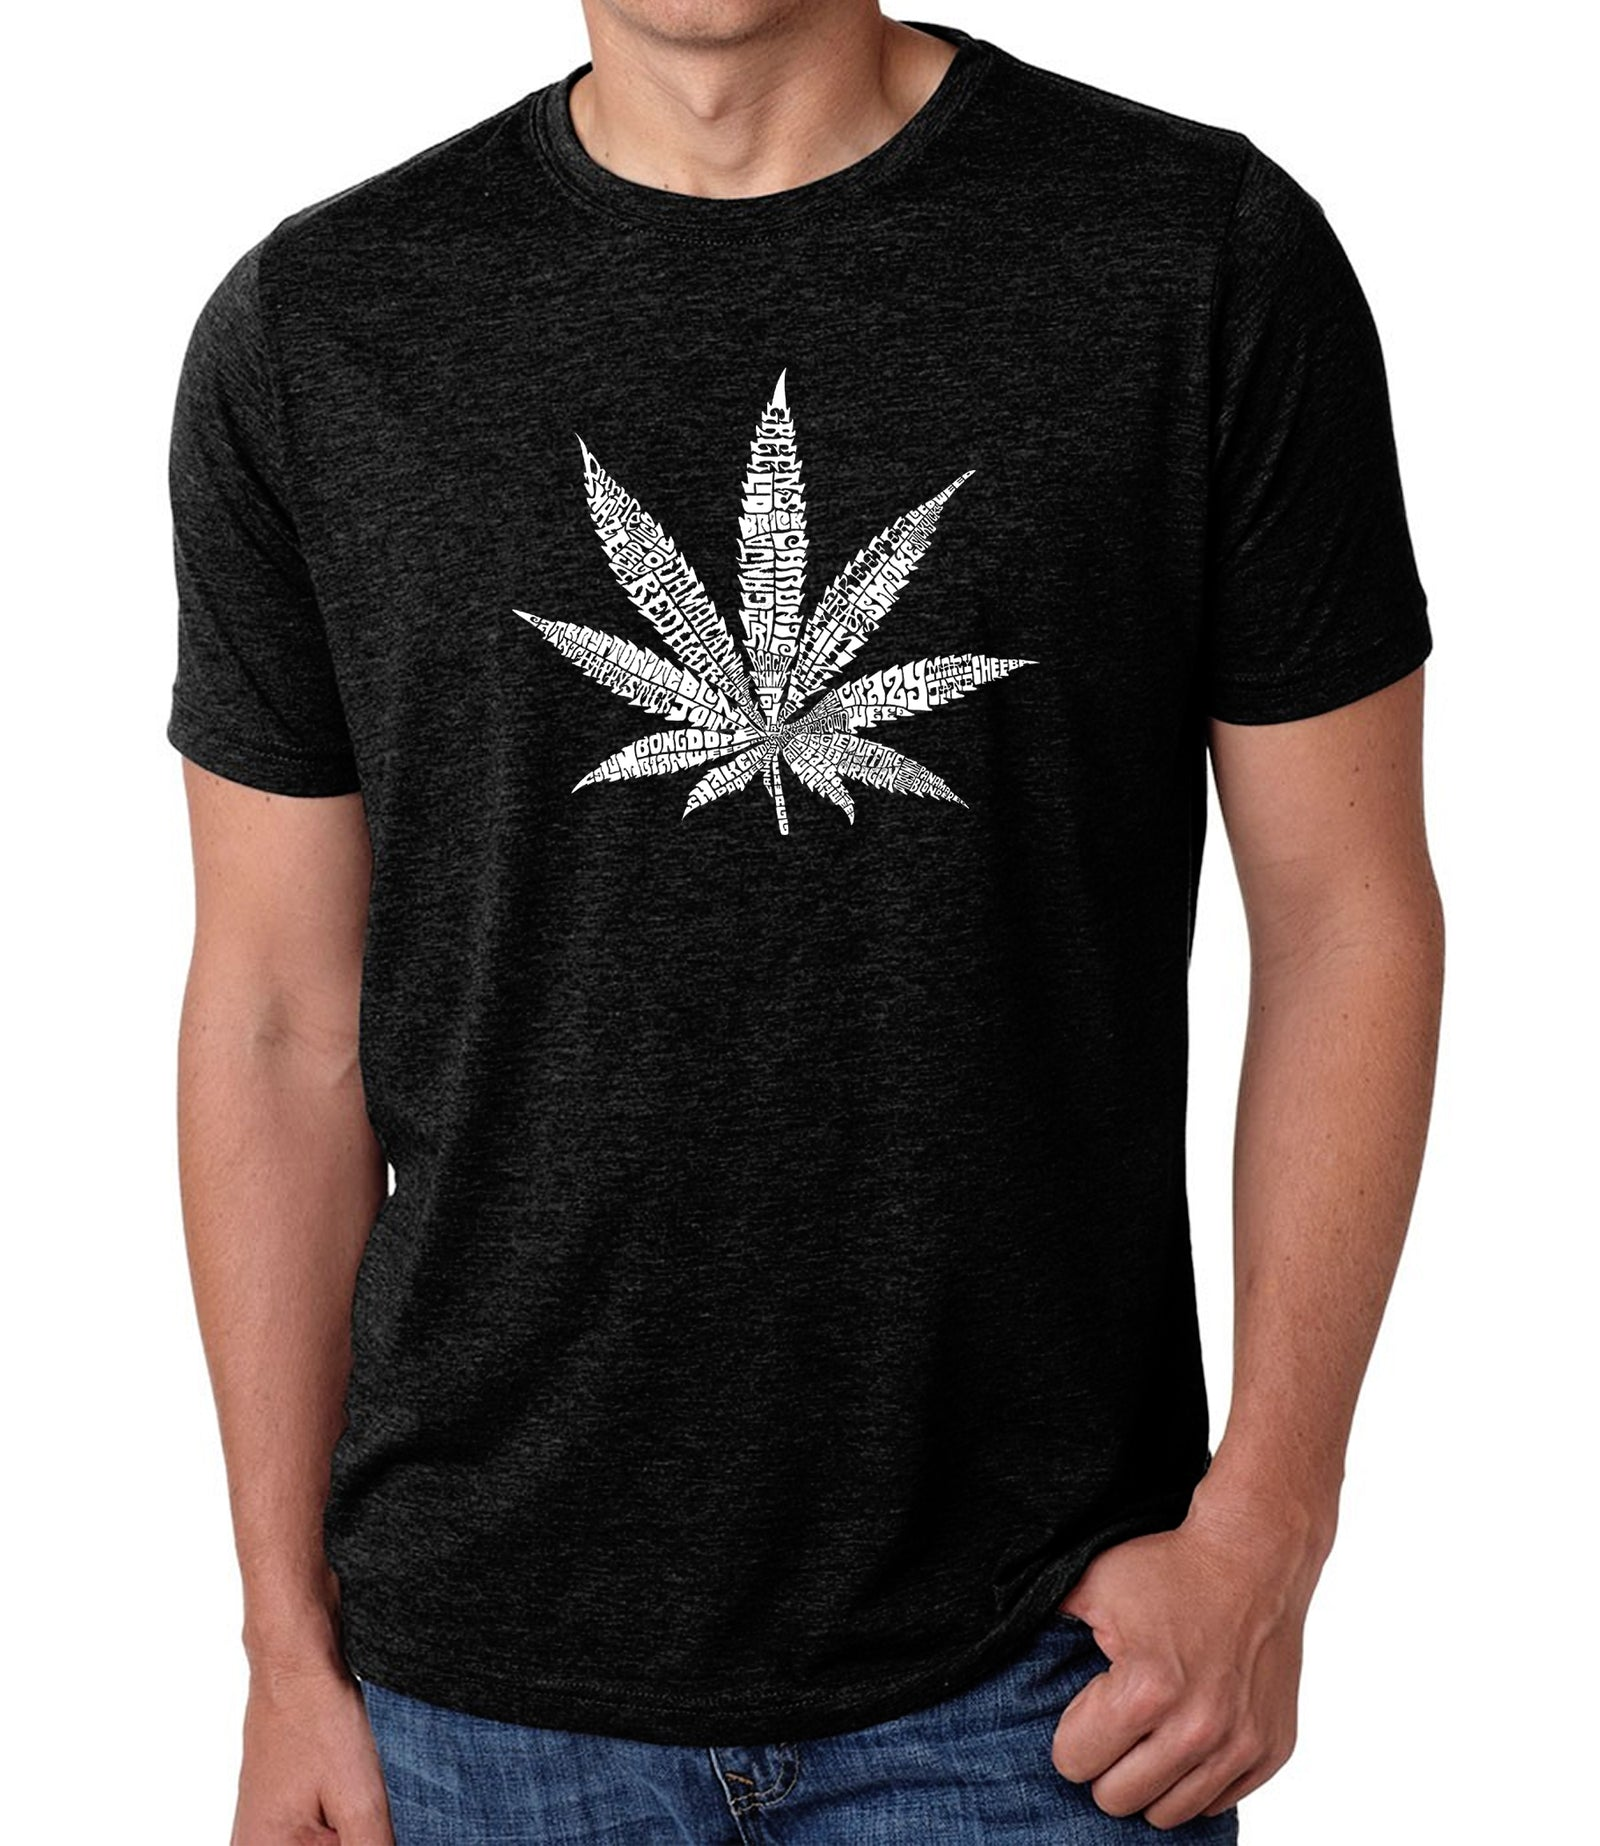 Men's Premium Blend Word Art T-shirt - 50 DIFFERENT STREET TERMS FOR MARIJUANA